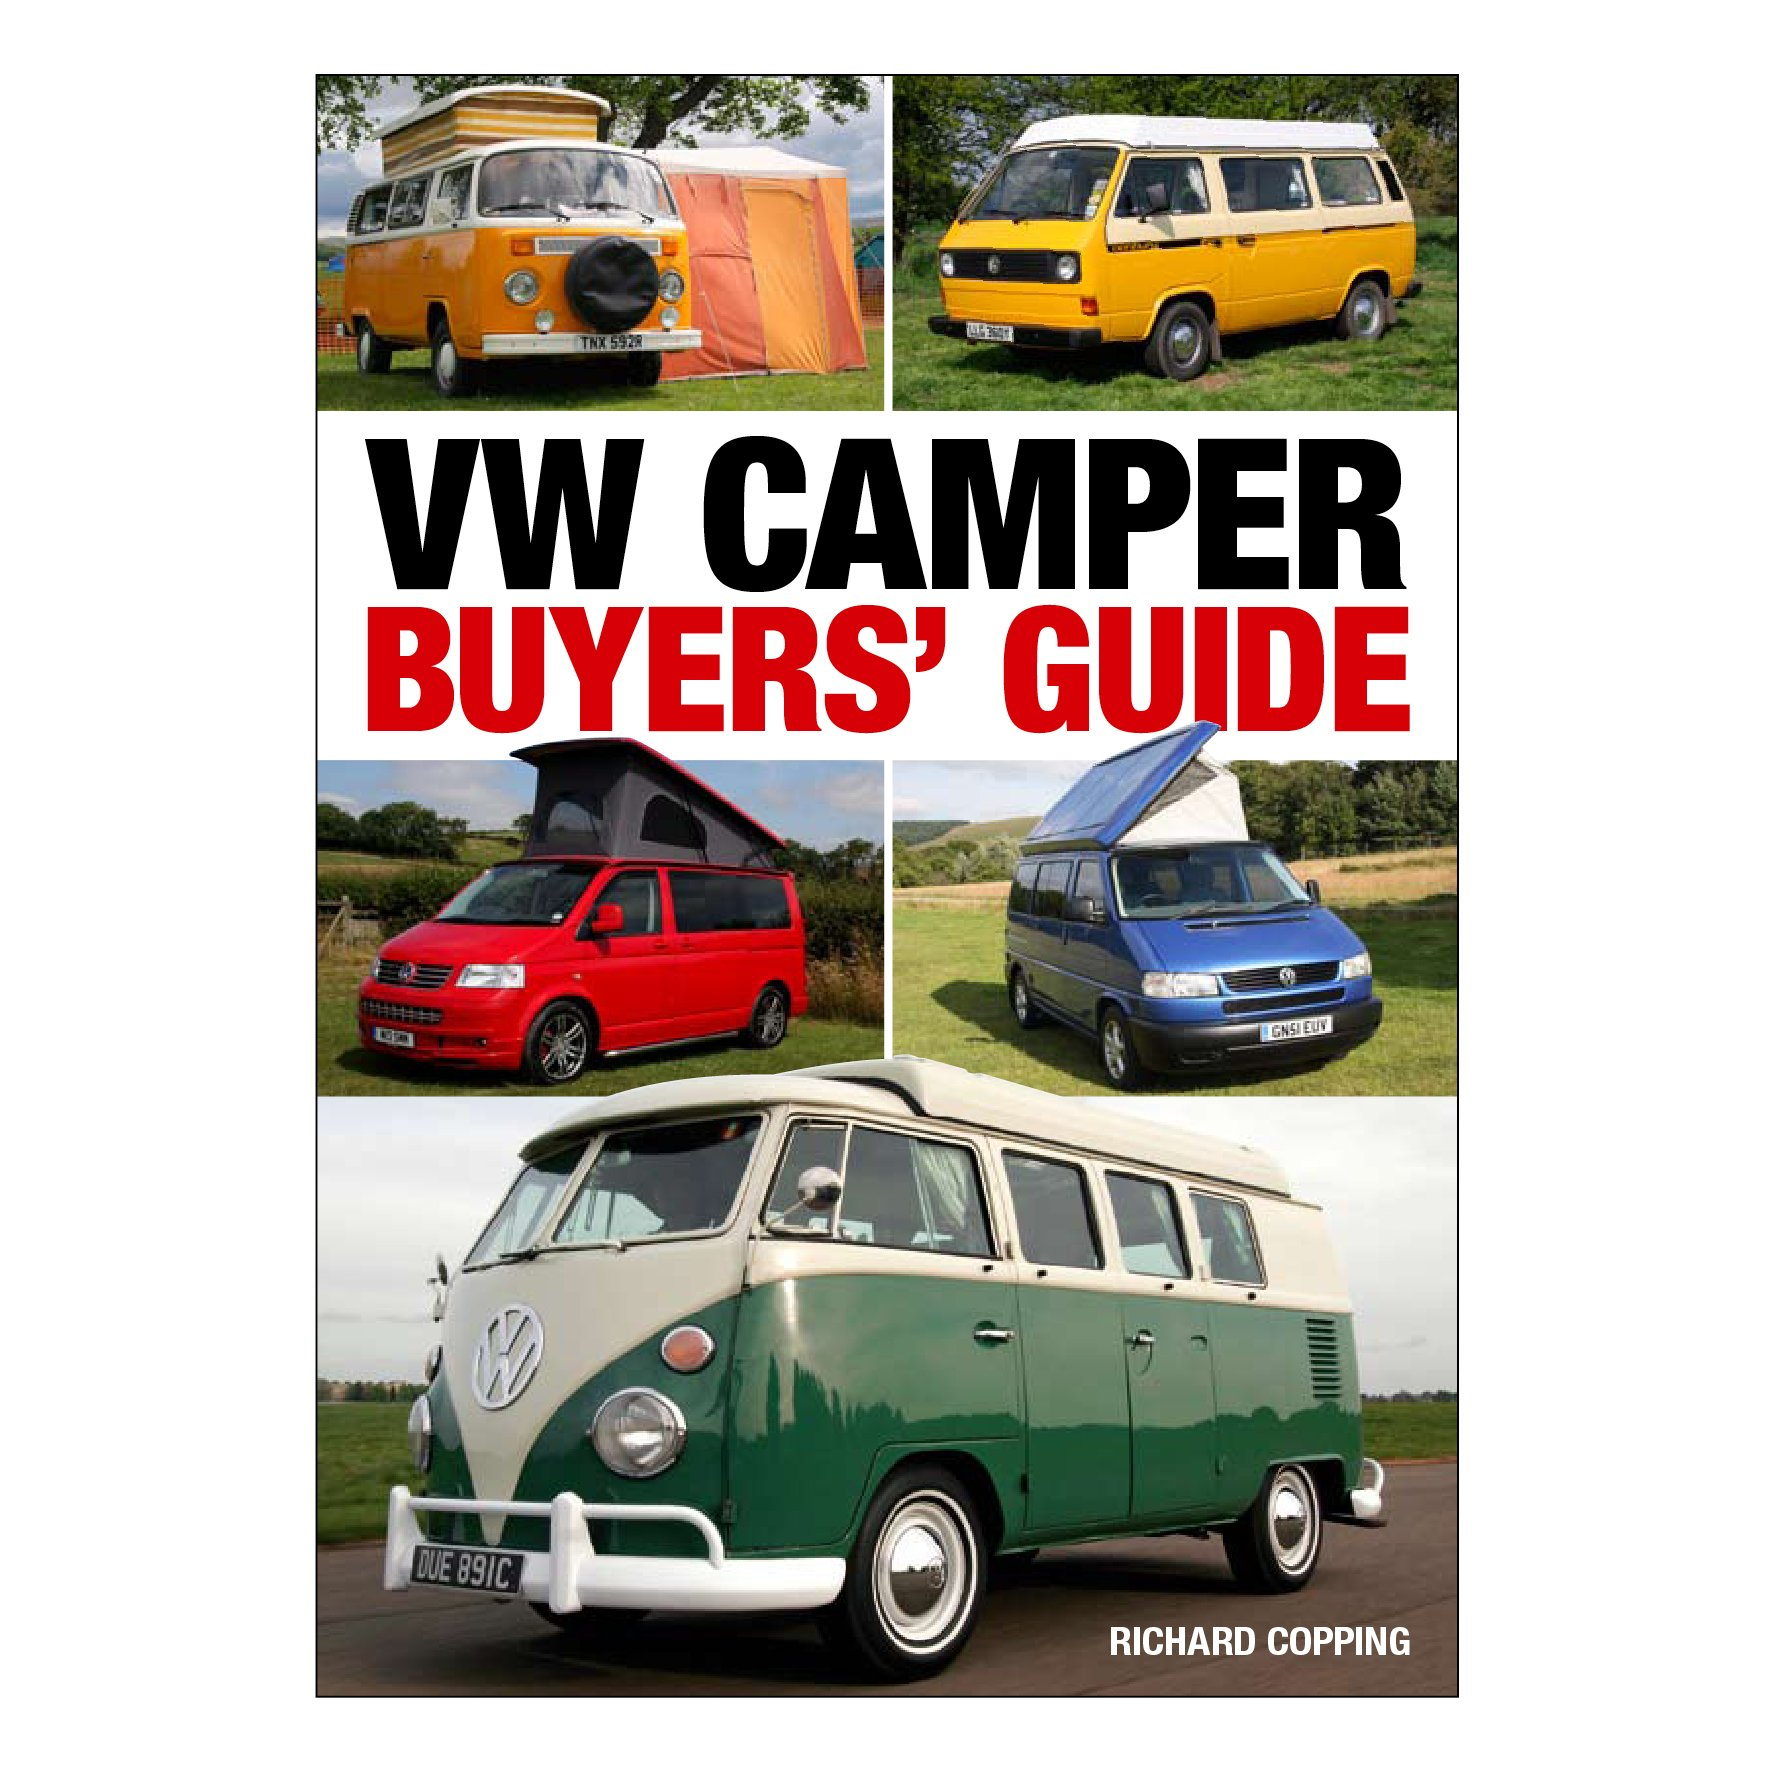 VW Camper Buyers' Guide by Richard Copping